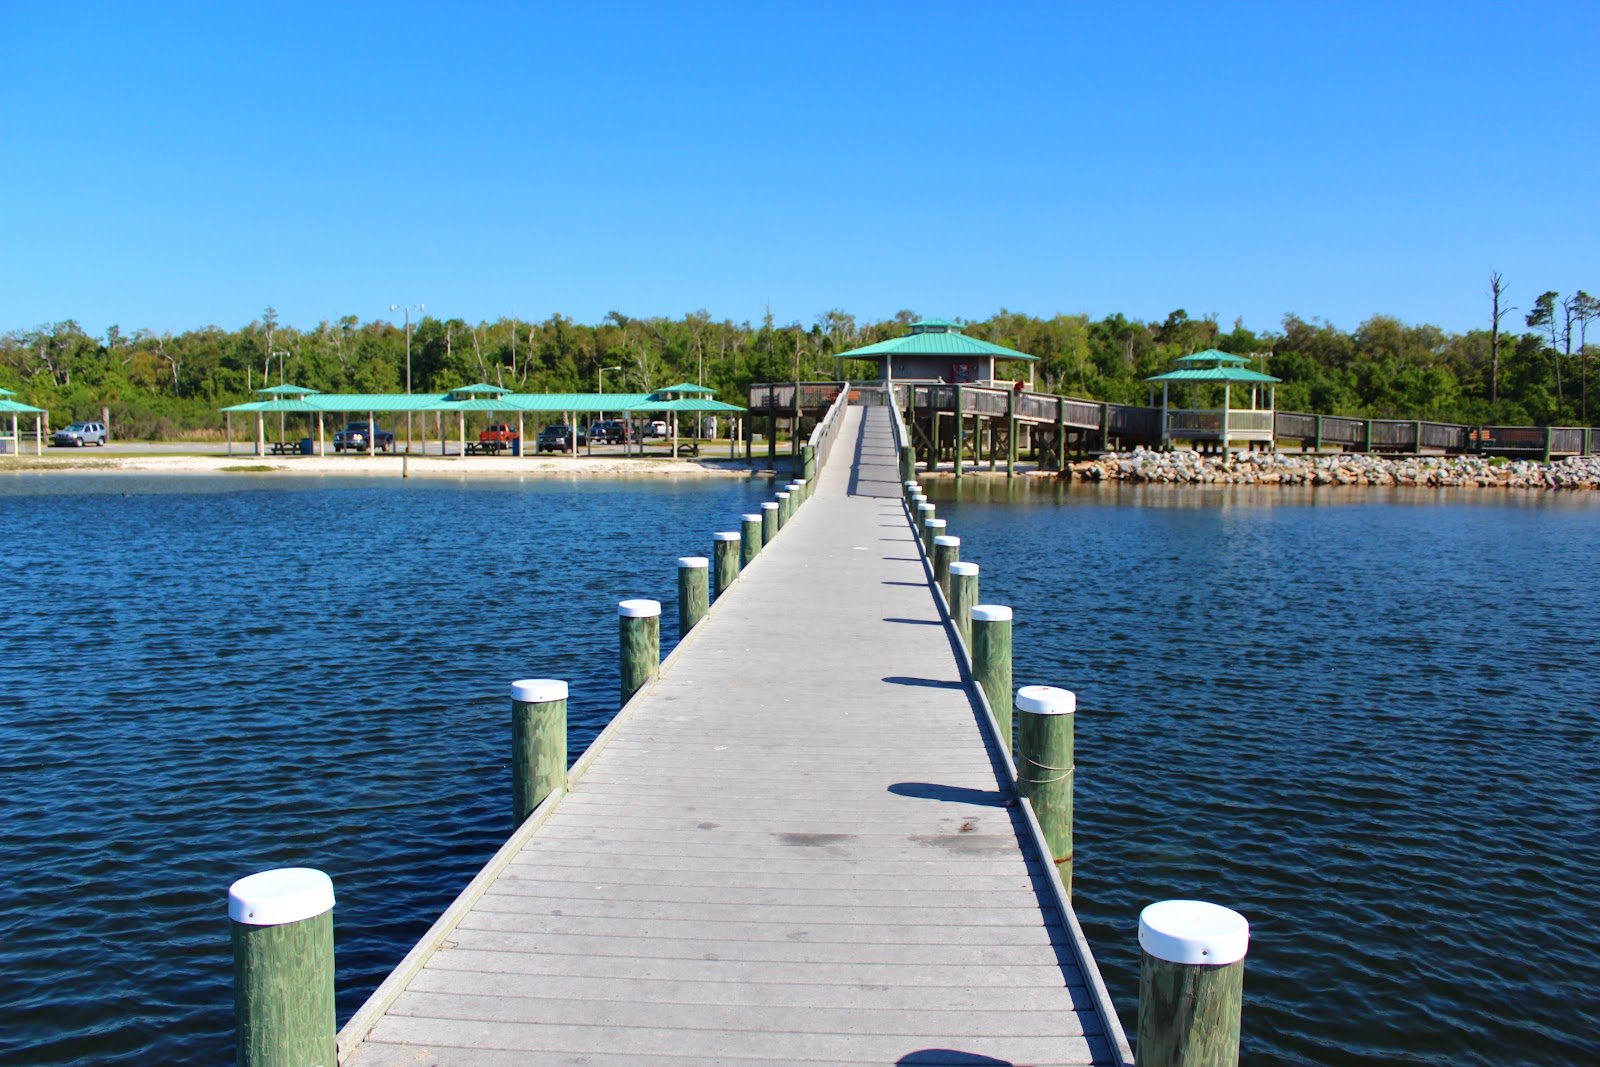 gulf breeze Gulf breeze rv resort offers over 250 rv camping sites with hook-ups, wi-fi access, cable tv, sewer, showers, indoor and outdoor swimming pools and rental cab.